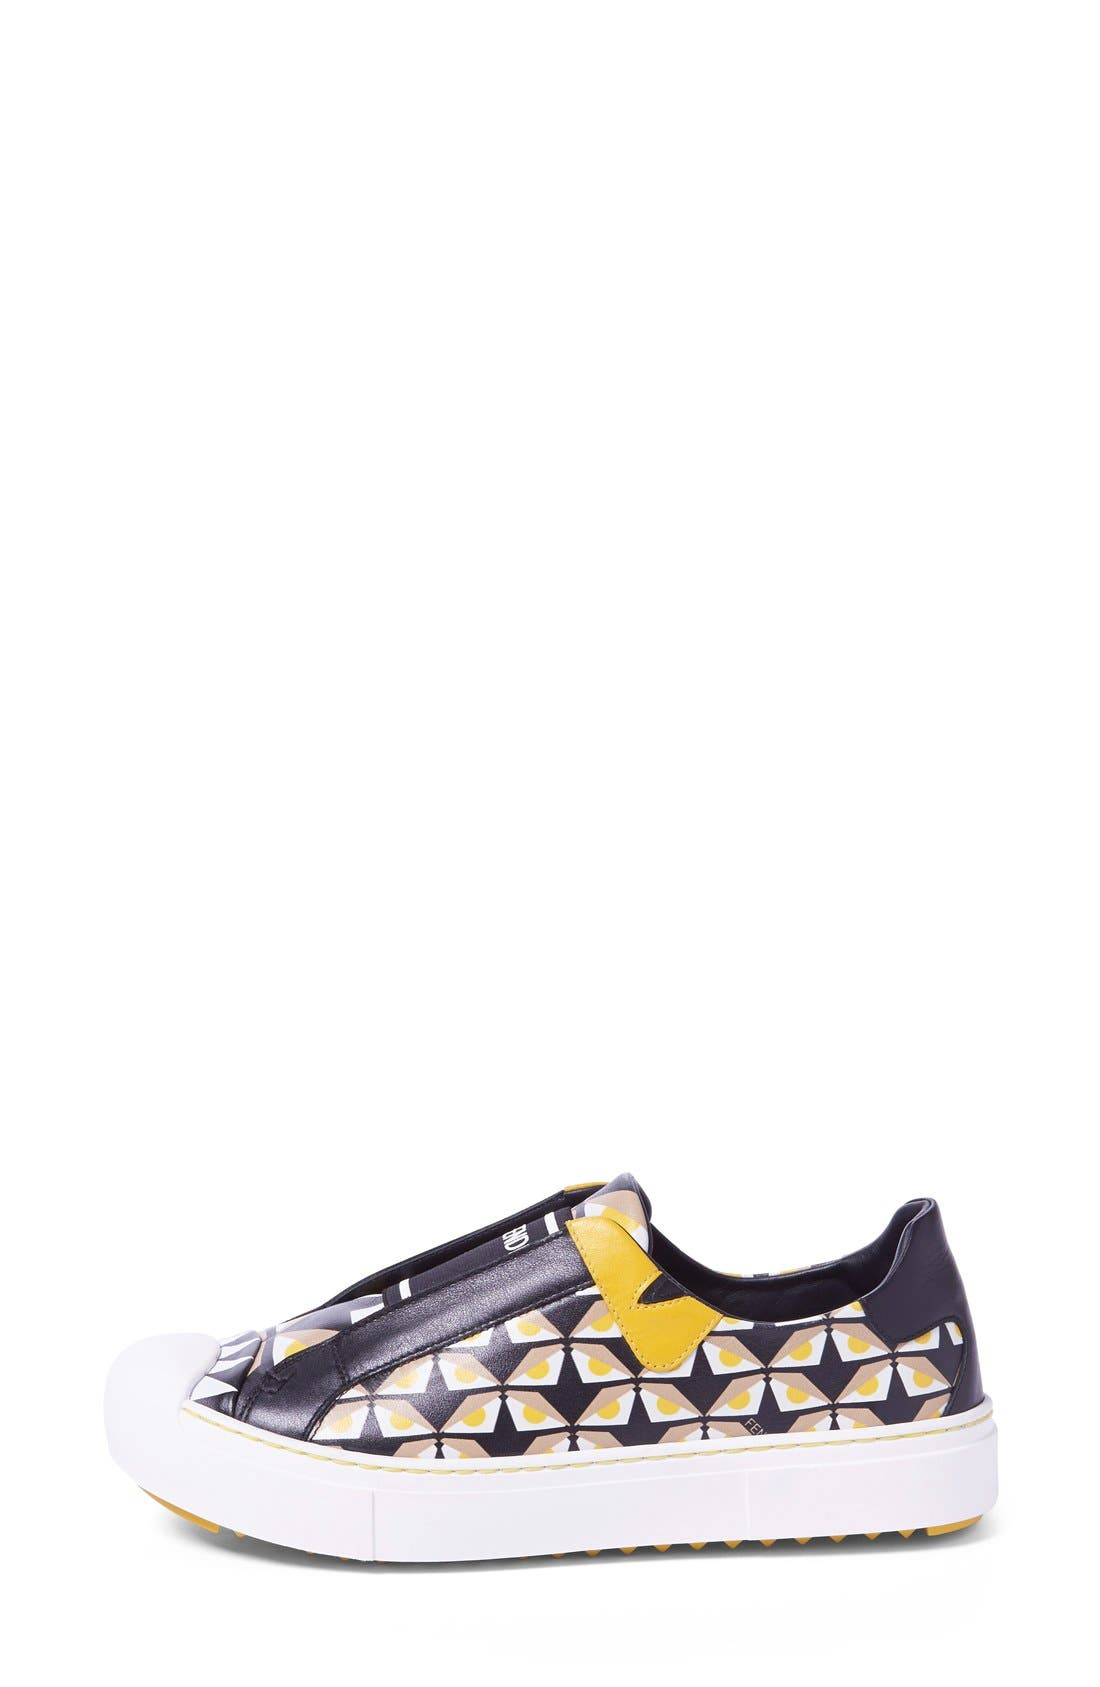 Alternate Image 4  - Fendi 'Bugs' Slip-On Sneaker (Women)